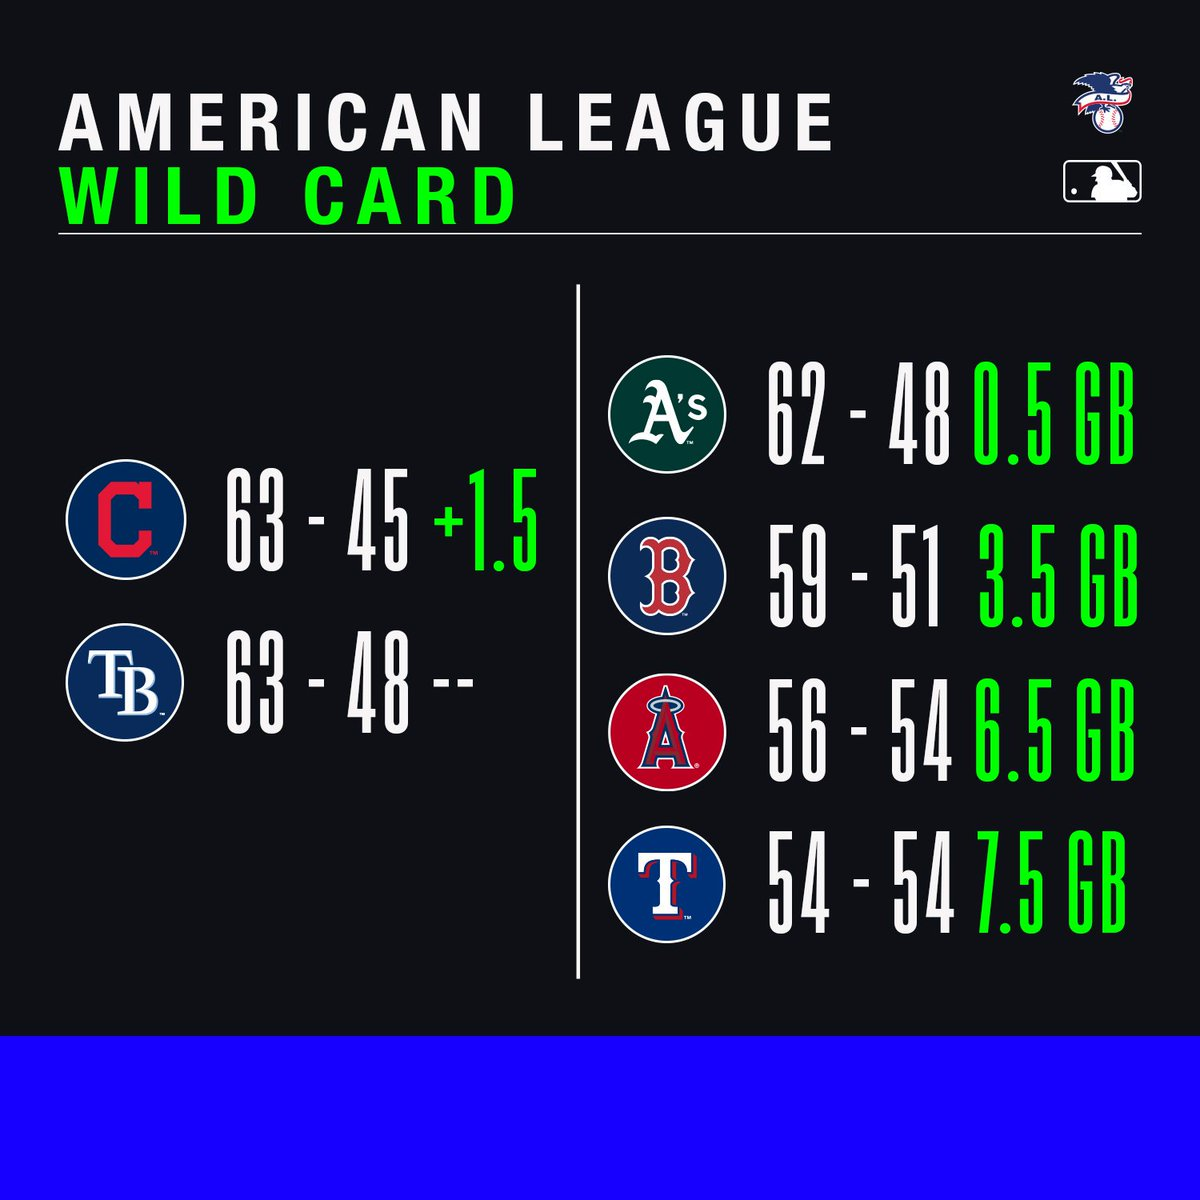 Mlb On Twitter Things Are About To Get Wild Who Are Your Wild